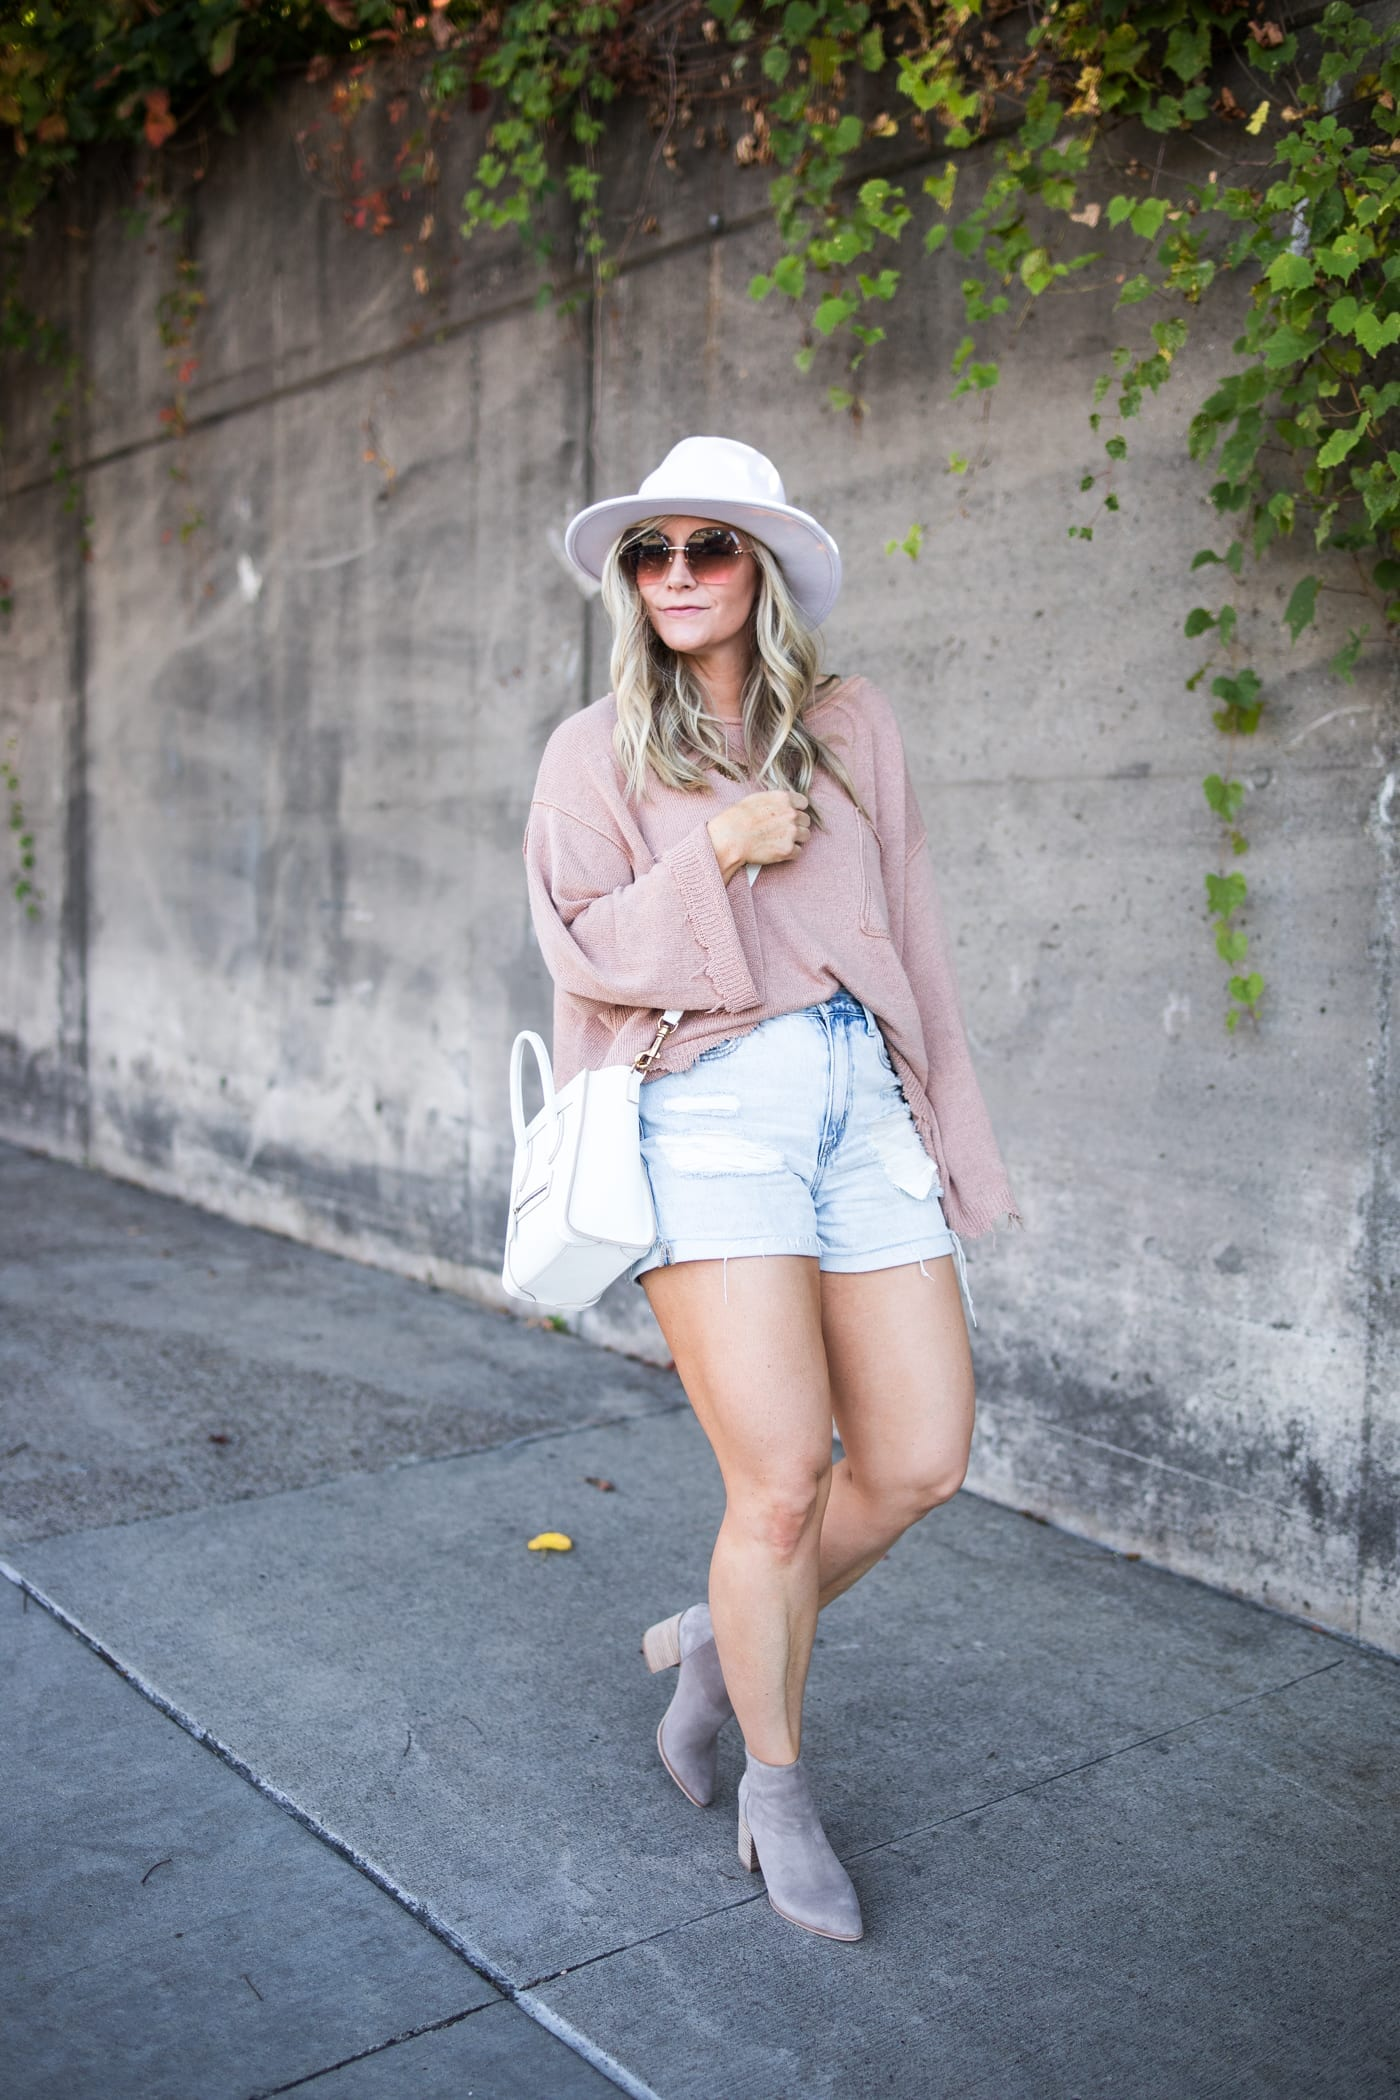 transitiong my closet- fall transition pieces- Marc Fisher Booties- Free People Sweater- White Wide Brim Hat-Shorts and Sweaters- Ashley Pletcher